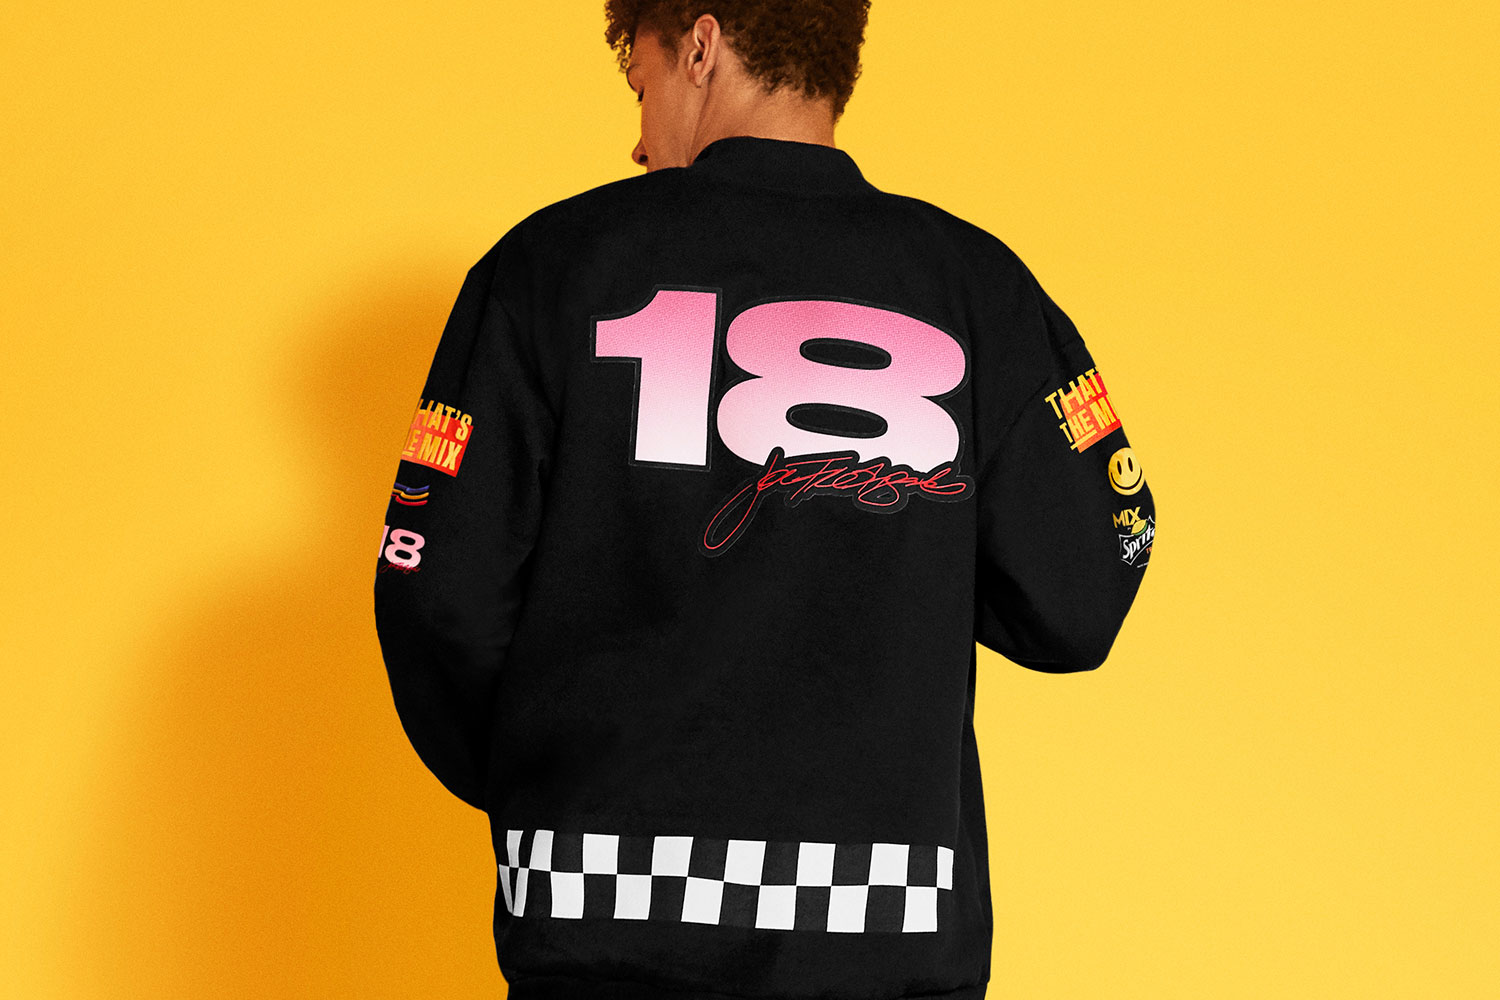 back of a black letterman jacket with Joe Freshgoods logos with number 18 and a black and white checker pattern